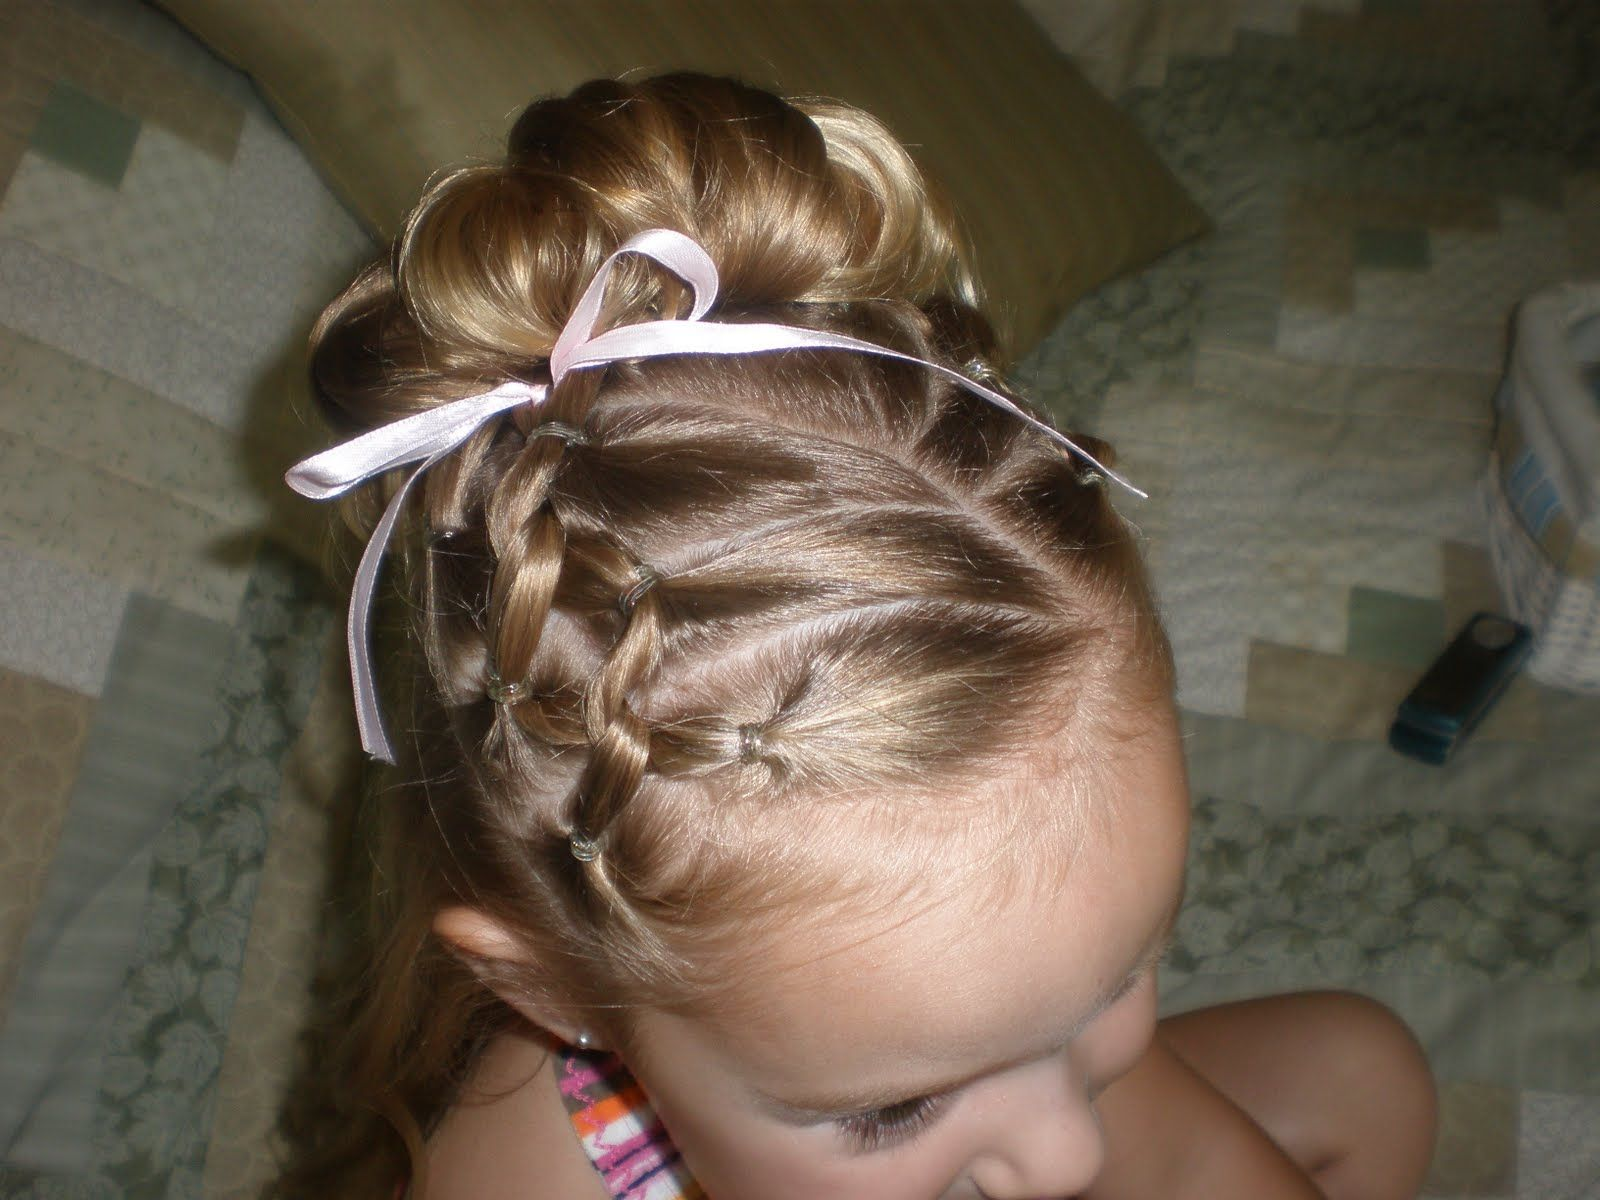 Lil Girl Hair Up Do Just Did This She Looks Darling Hair Styles Little Girl Hairstyles Girl Hairstyles